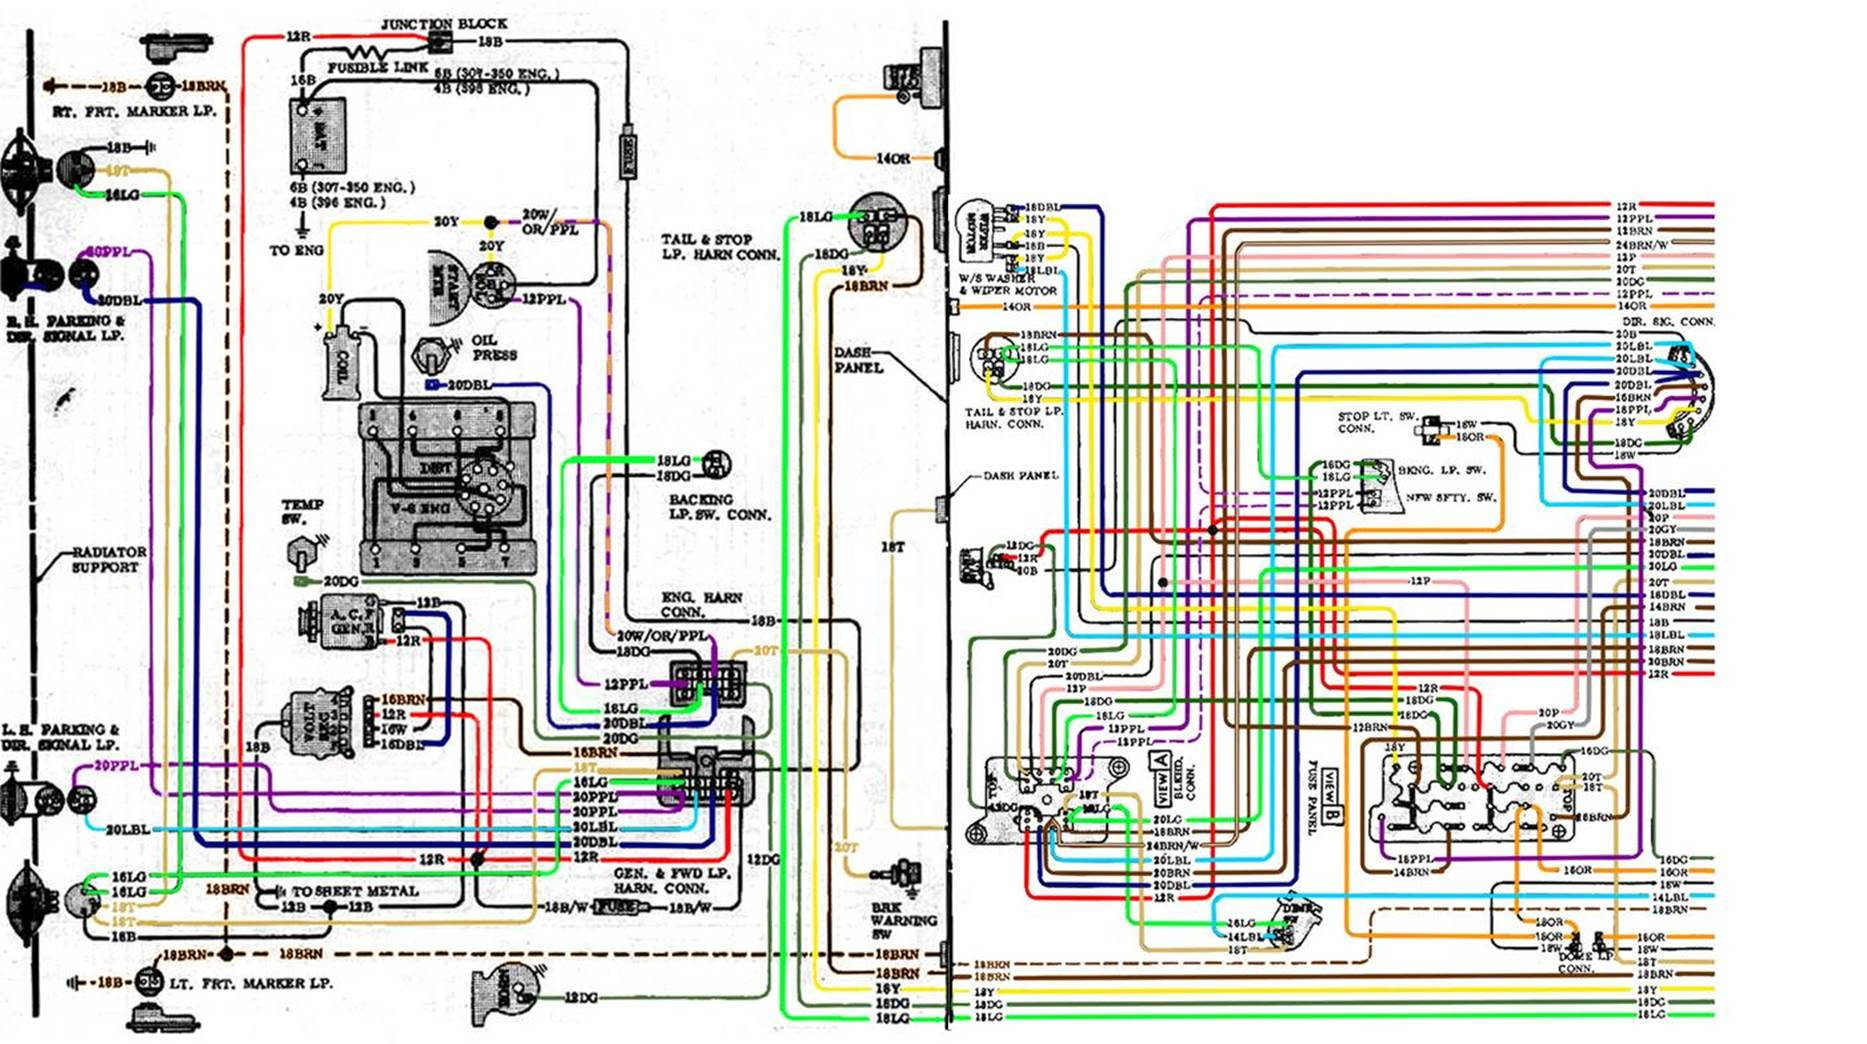 image002 72 c10 wiring diagram chevy truck wiring diagram \u2022 wiring diagrams 1985 chevy truck wiring harness at eliteediting.co